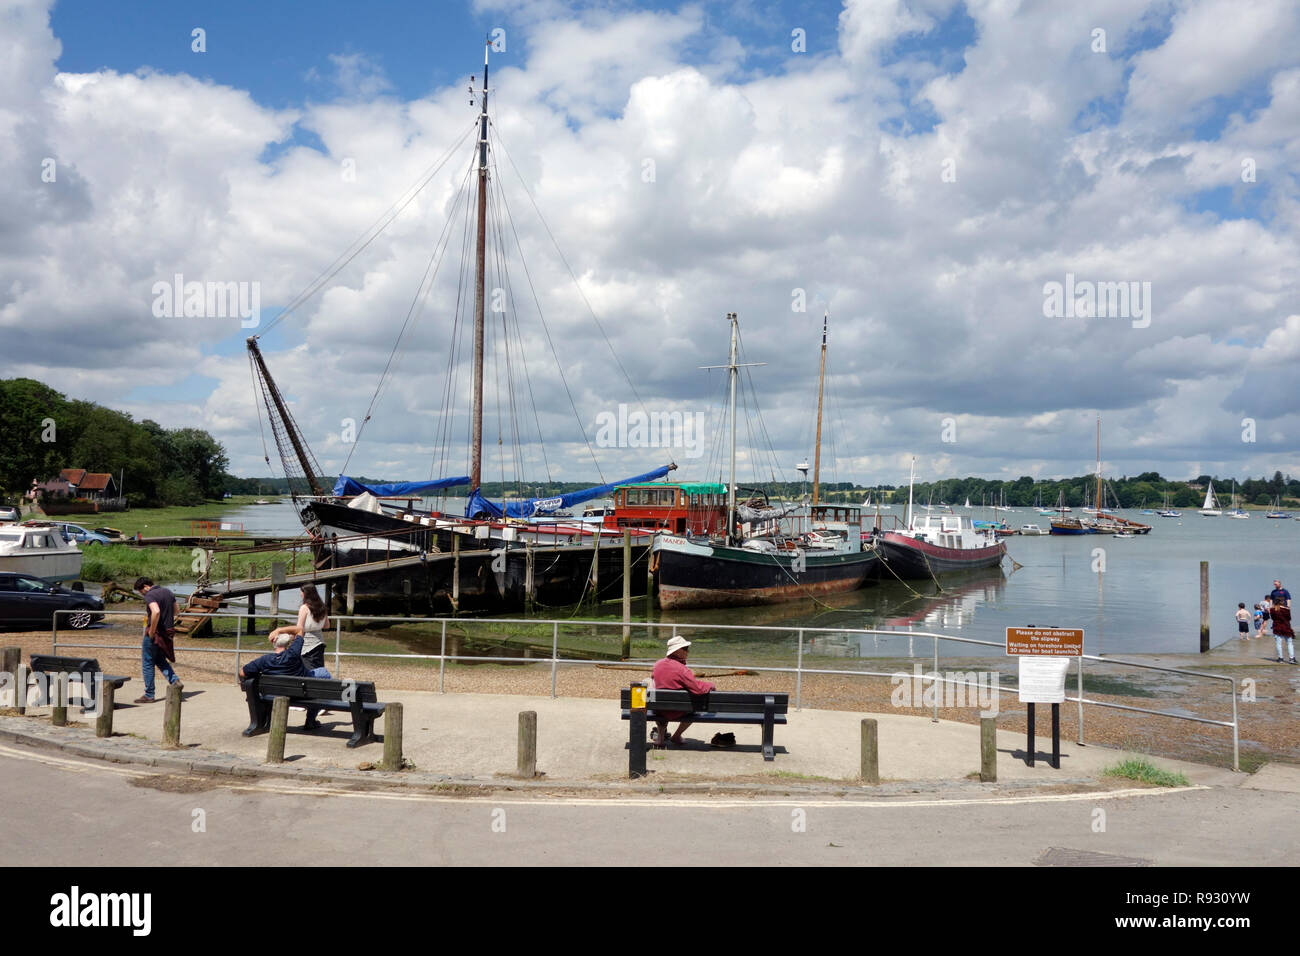 The quayside in the village of Pin Mill, Suffolk - Stock Image